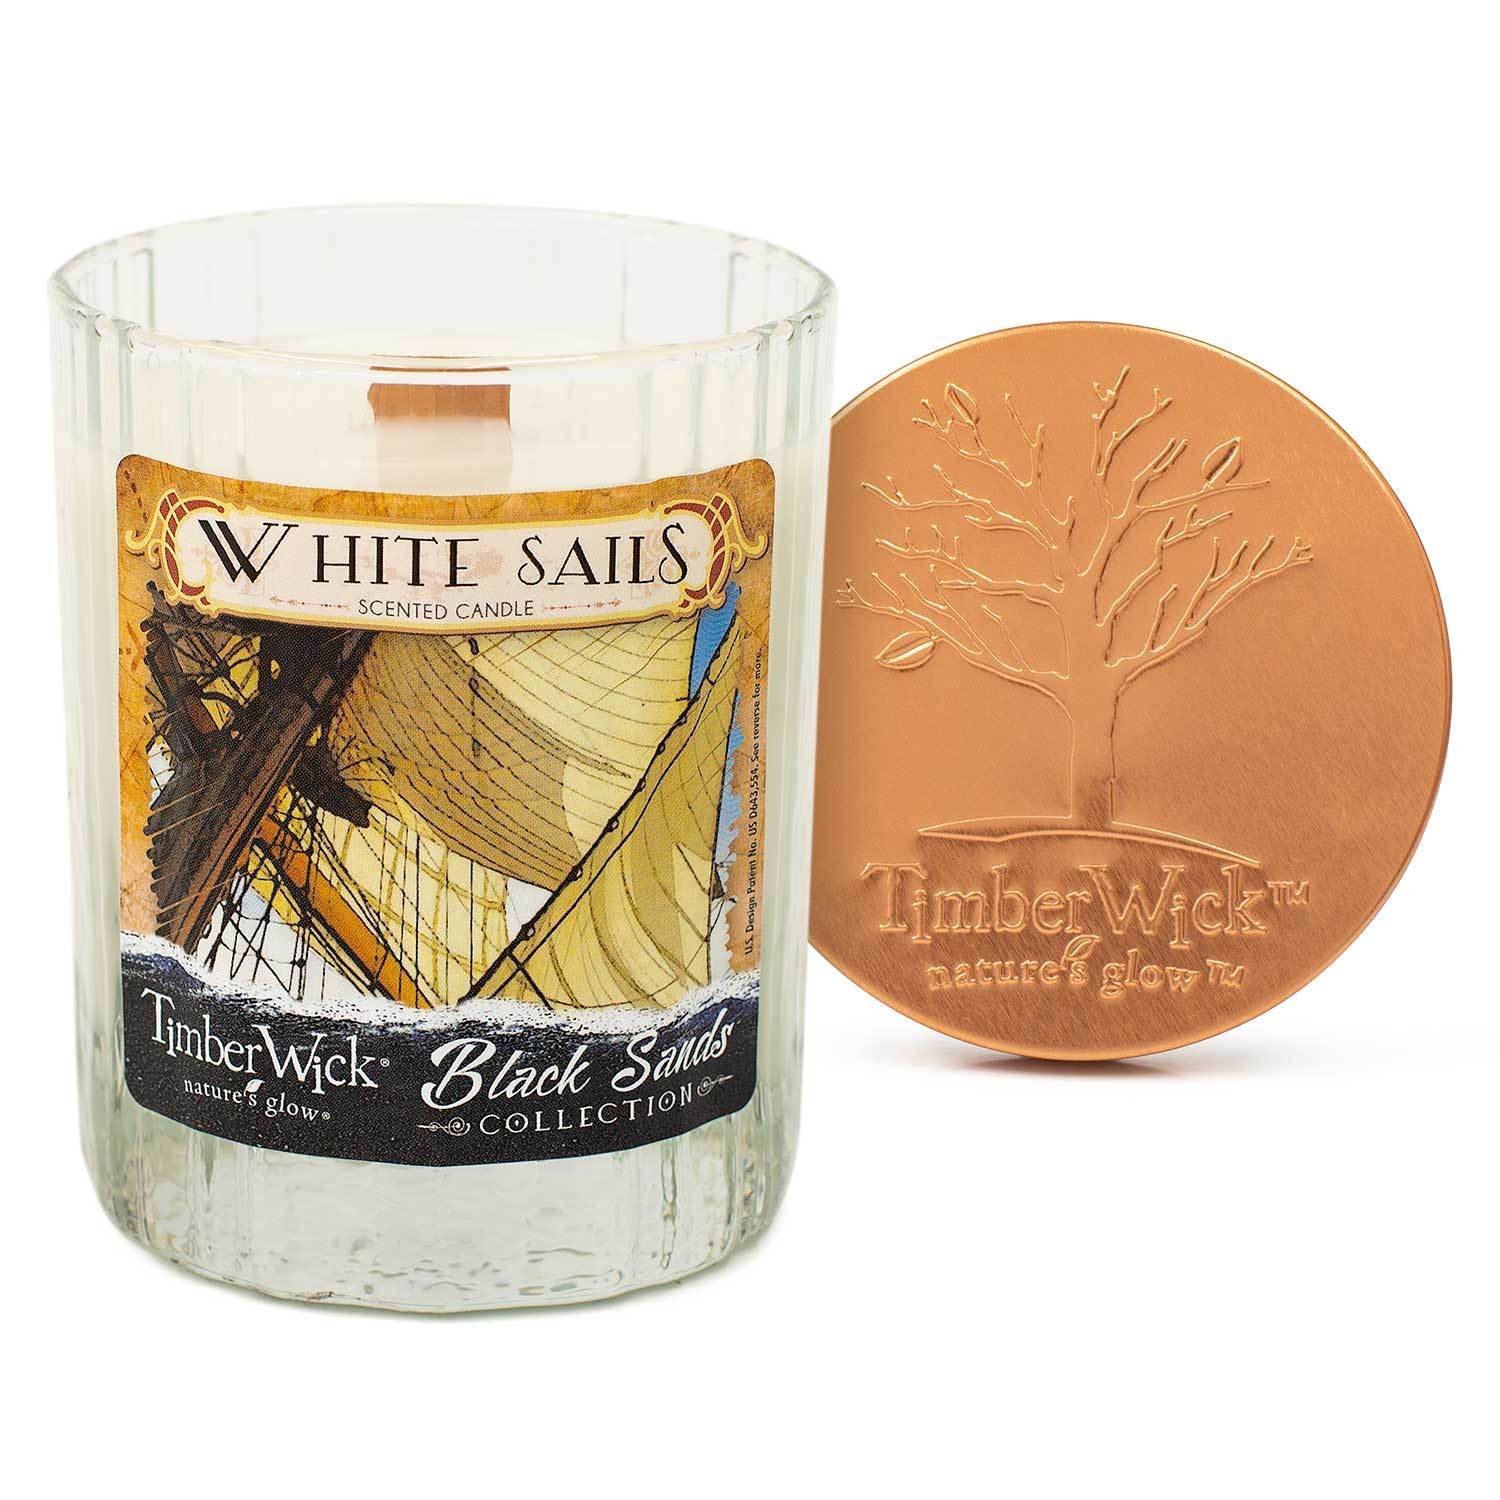 Timberwick White Sails Scented Candle Timberwick Candlemart.com $ 9.99